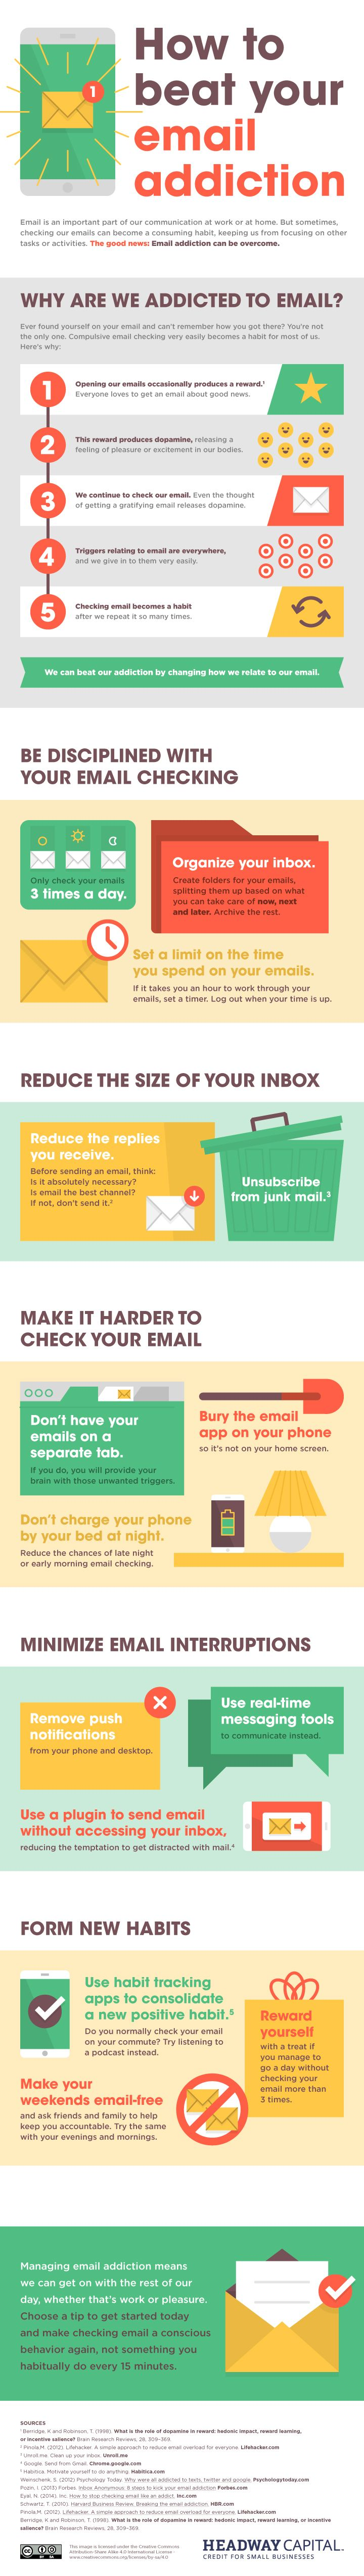 How-to-beat-your-email-addiction-DV2